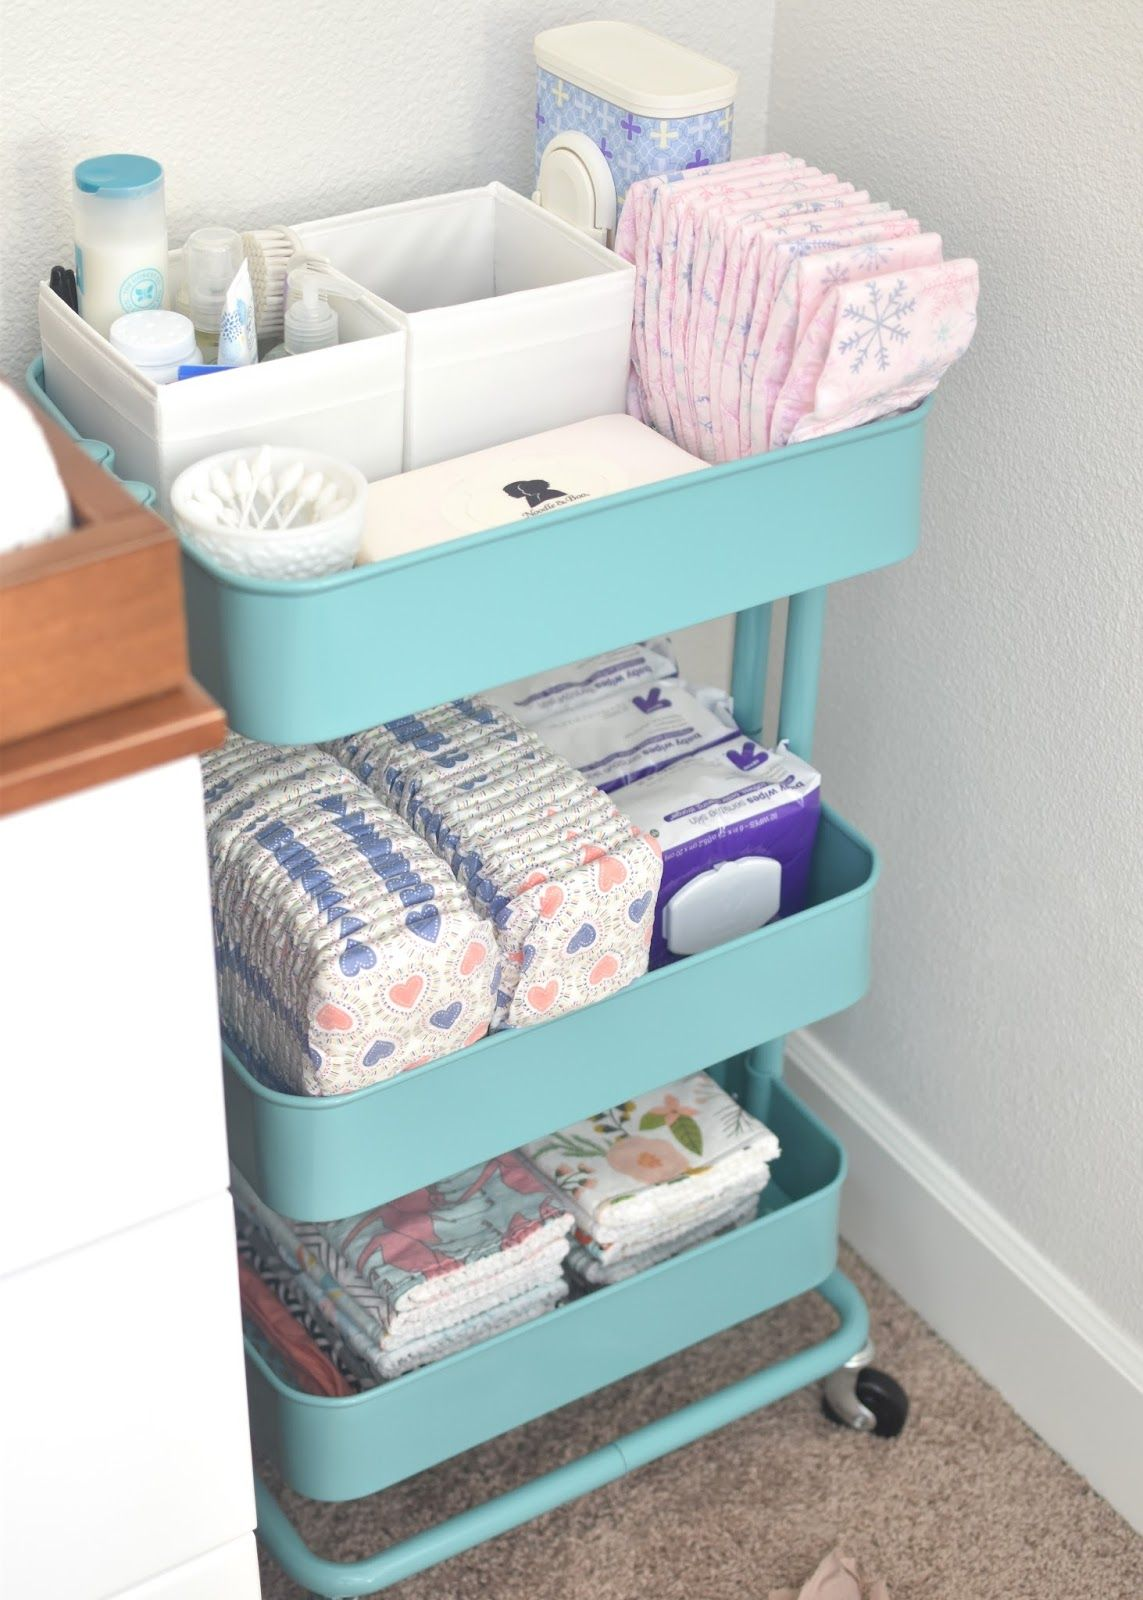 Convert An Ikea Rolling Cart To Changing Station Storage For Diapers Wipeore Perfect Baby S Nursery